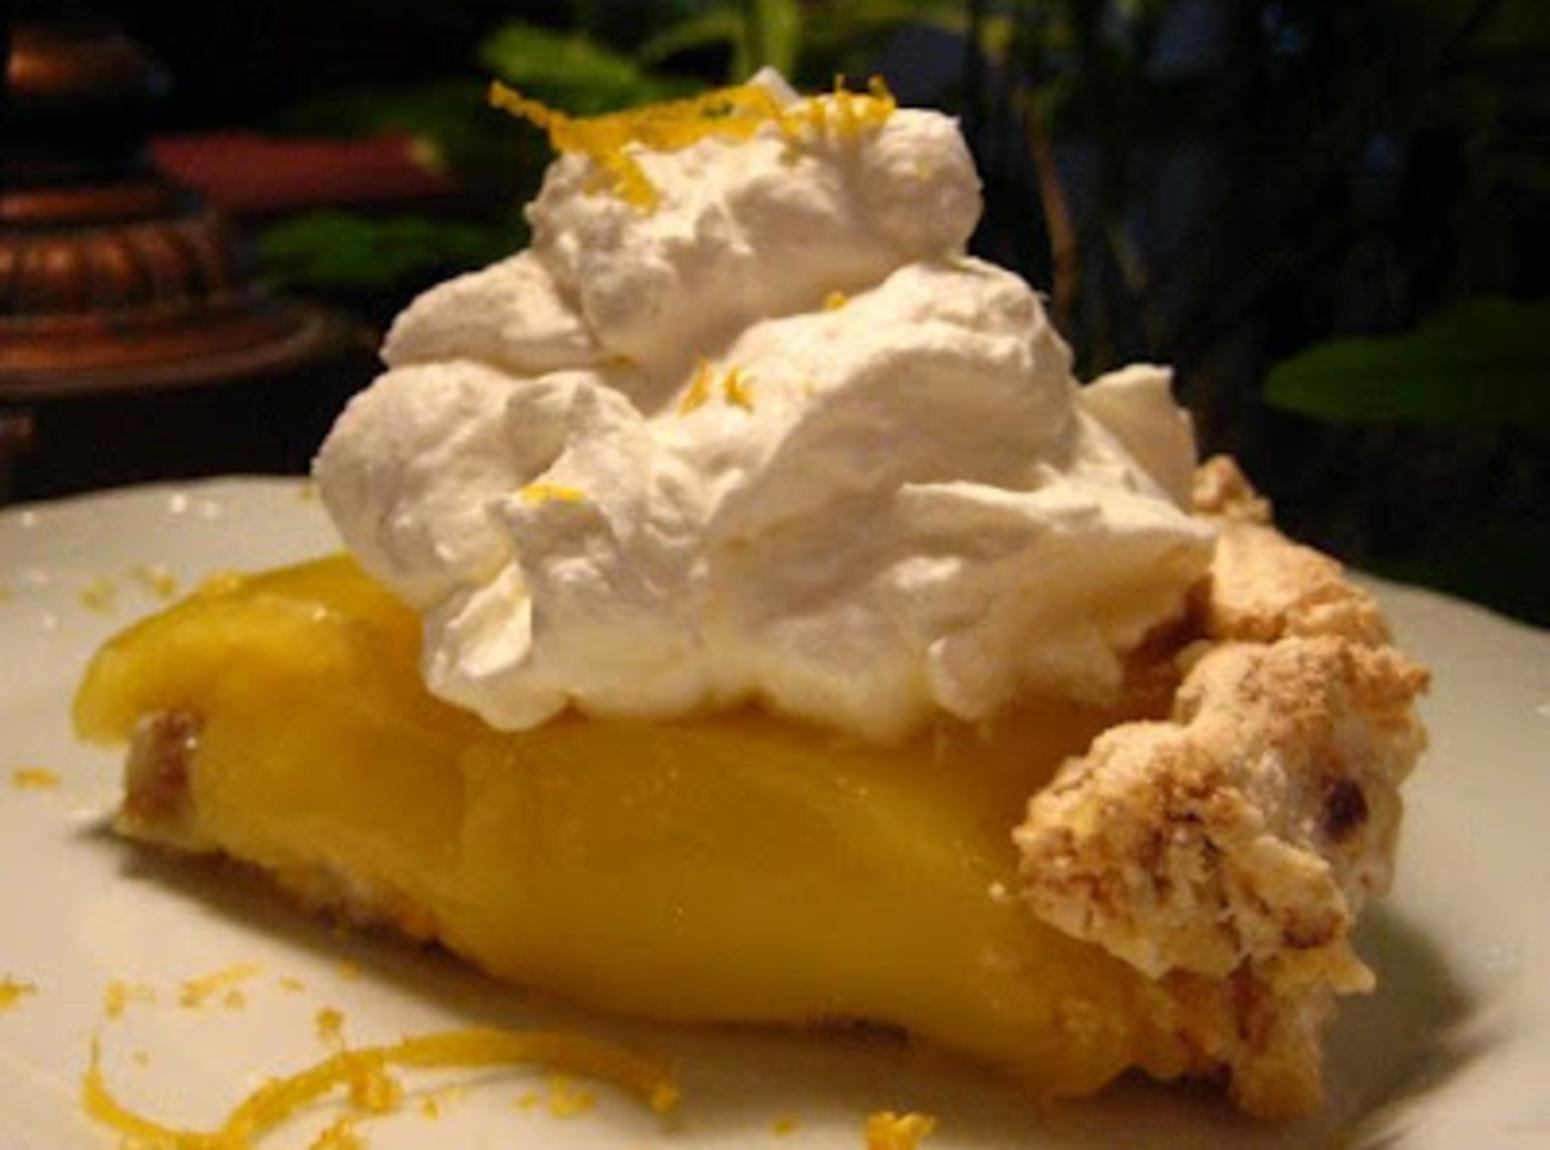 Upside Down Lemon Meringue Pie Recipe